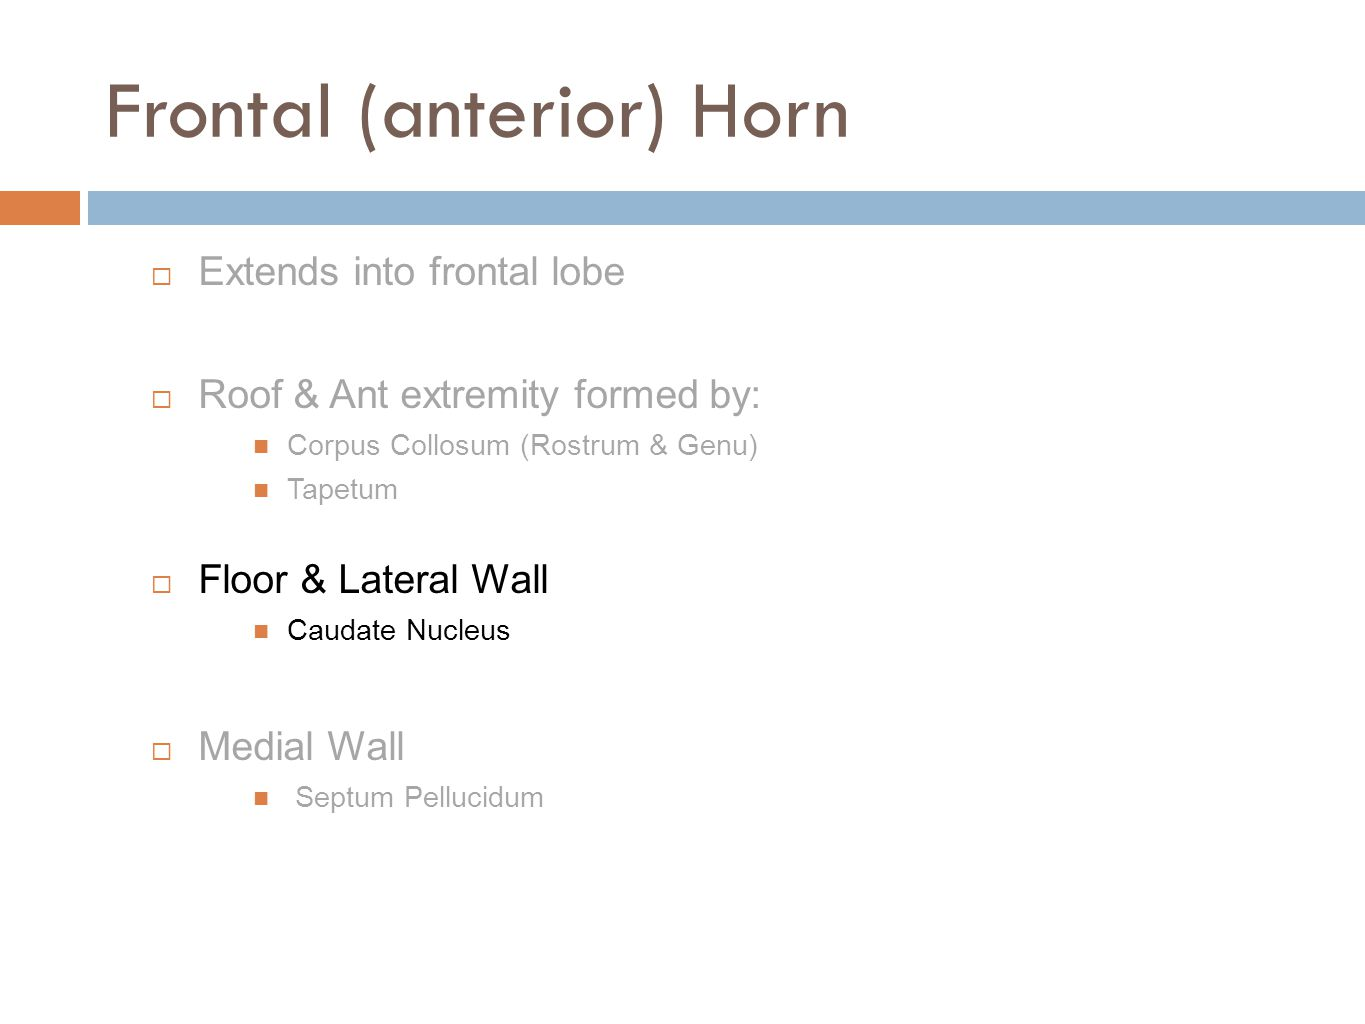 Frontal (anterior) Horn  Extends into frontal lobe  Roof & Ant extremity formed by: Corpus Collosum (Rostrum & Genu) Tapetum  Floor & Lateral Wall